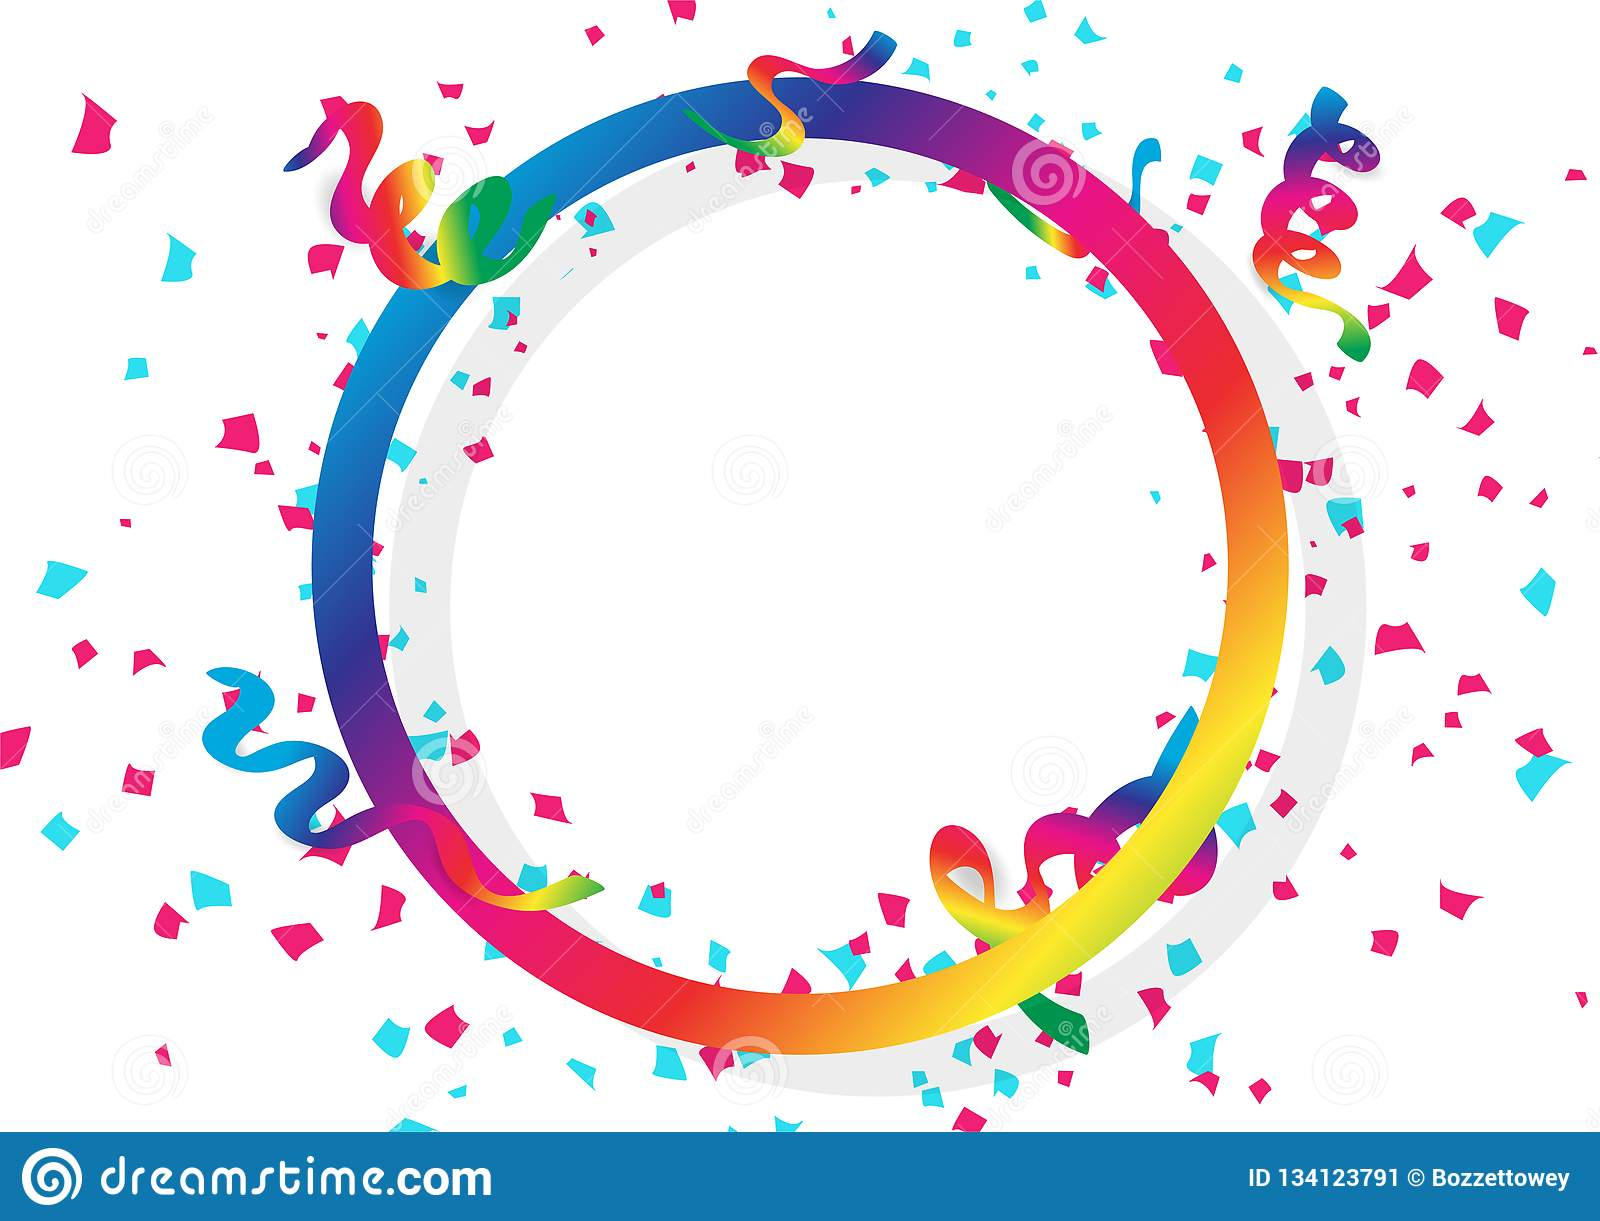 Confetti celebration, ribbons and paper scatter falling with circular ring spectrum rainbow frame using for holidays concept on